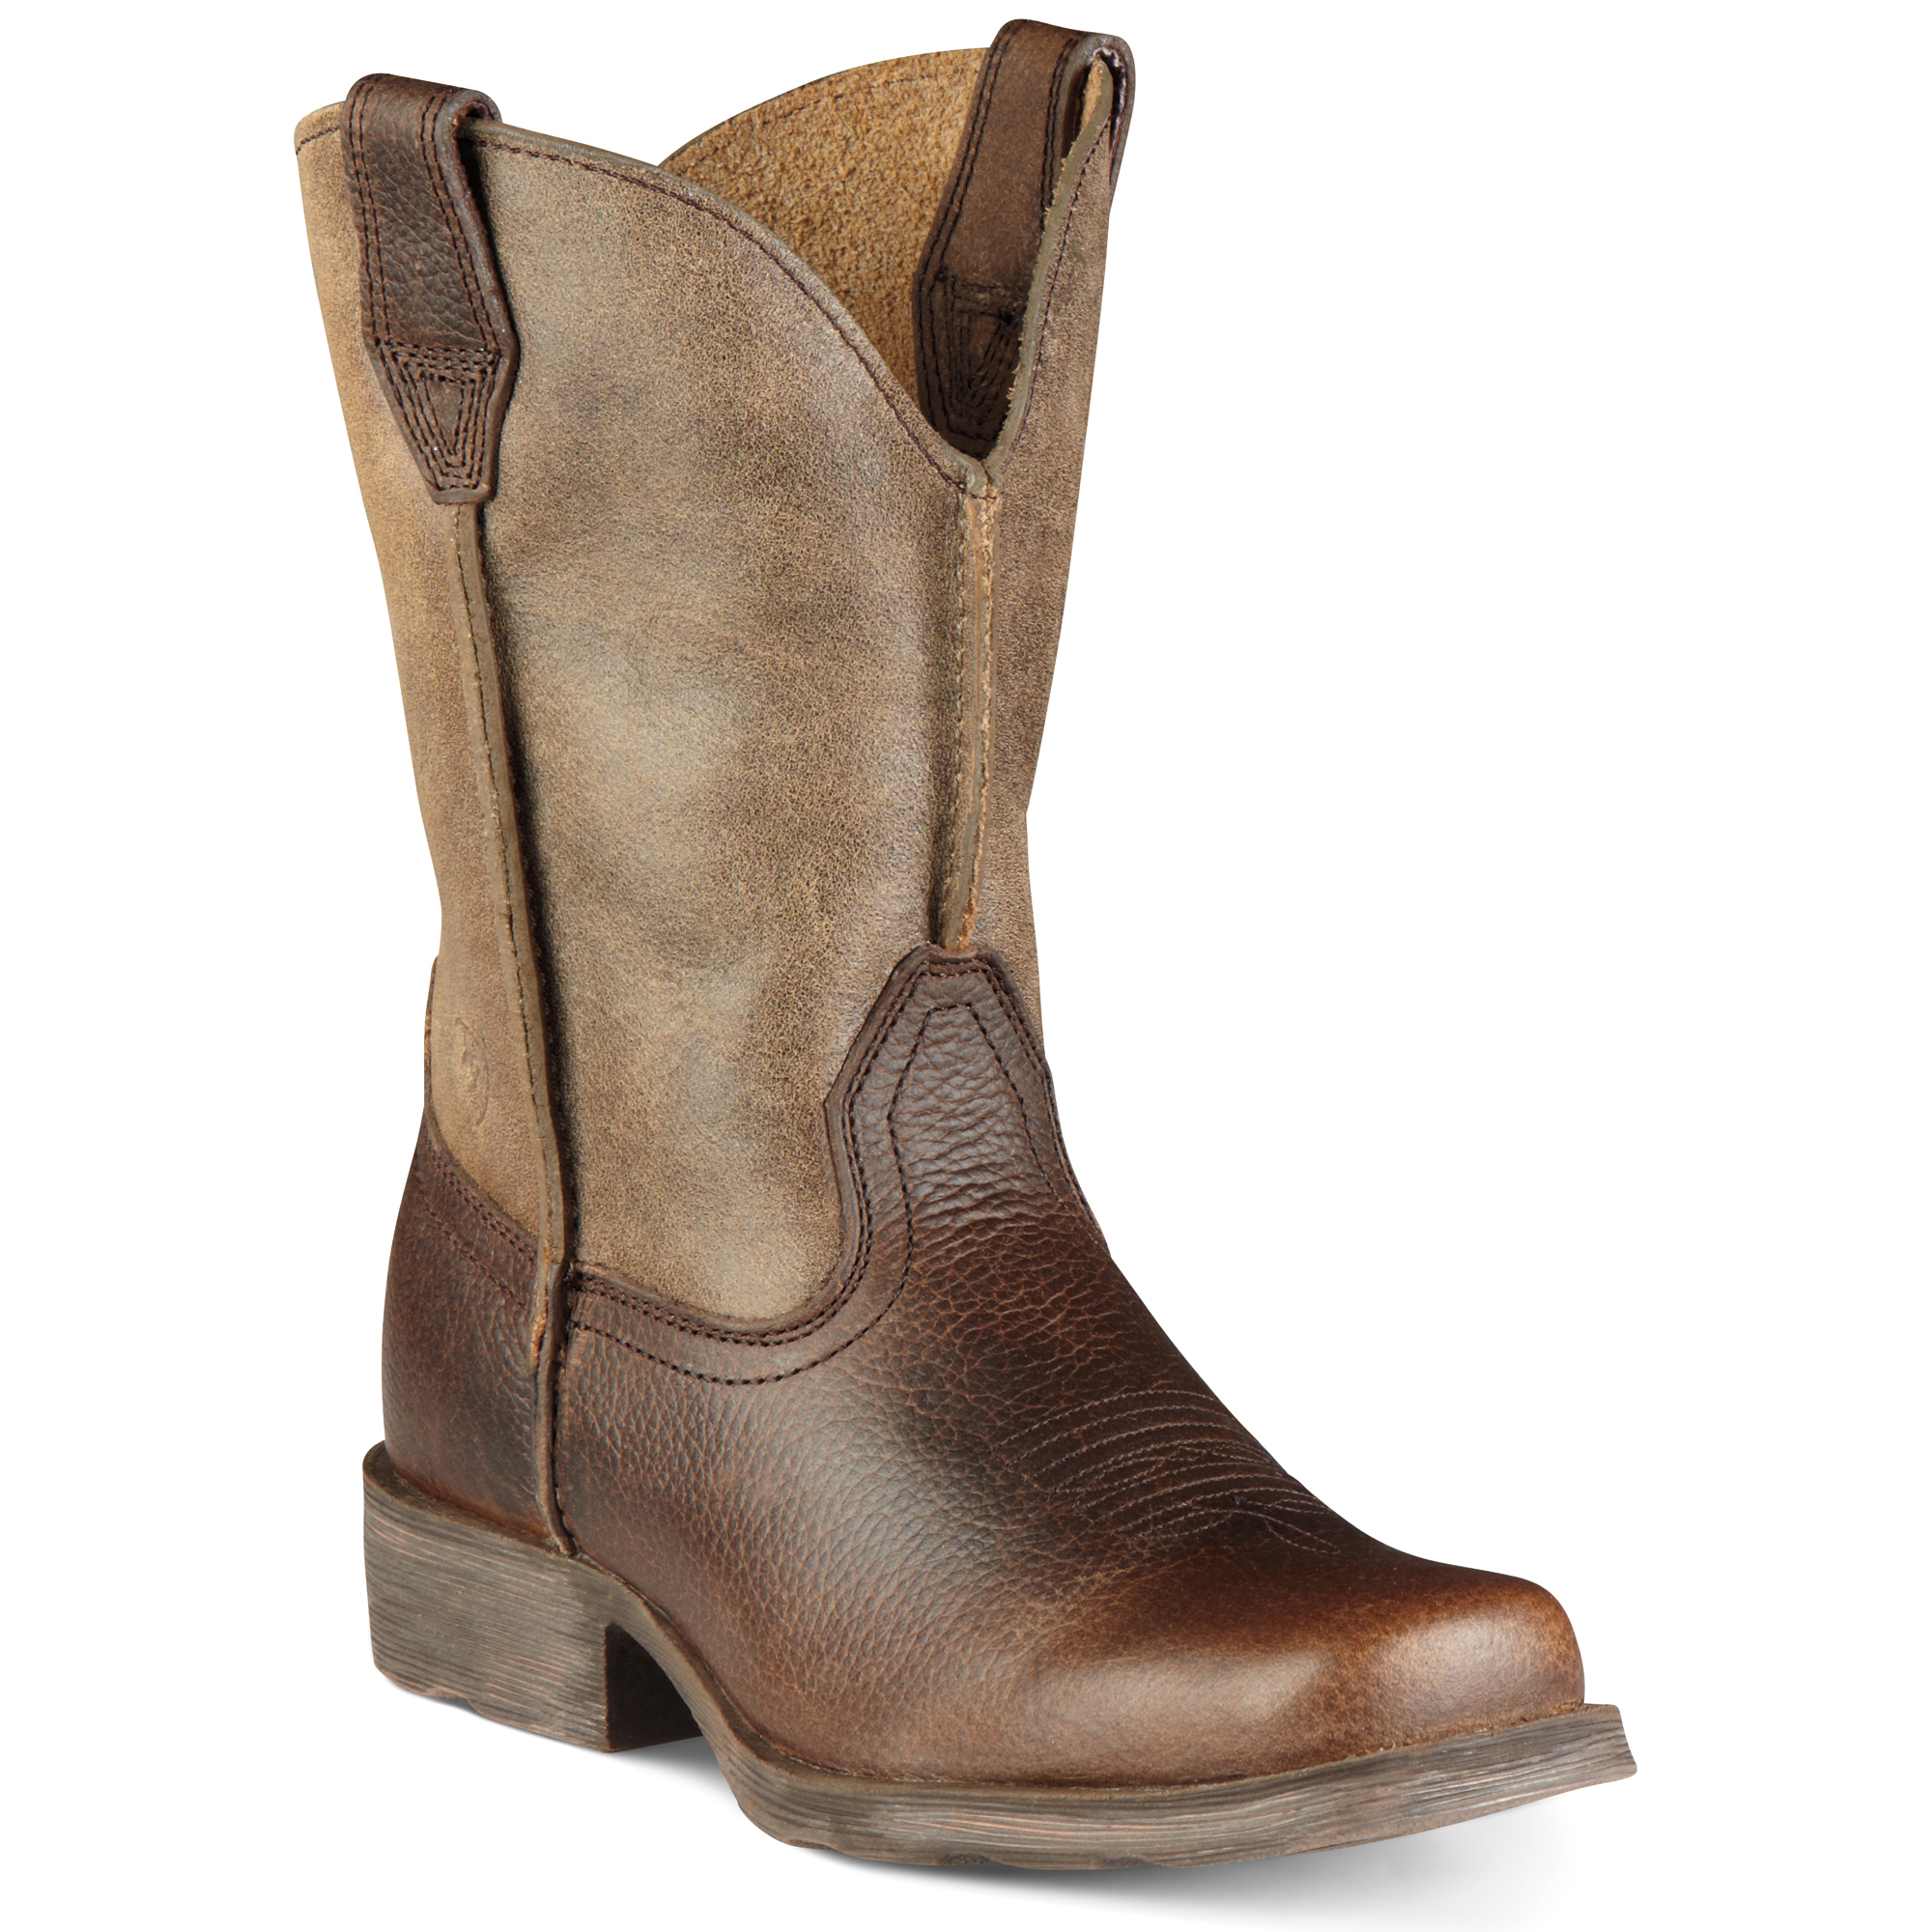 Boys Ariat Boots gR7H1cn9